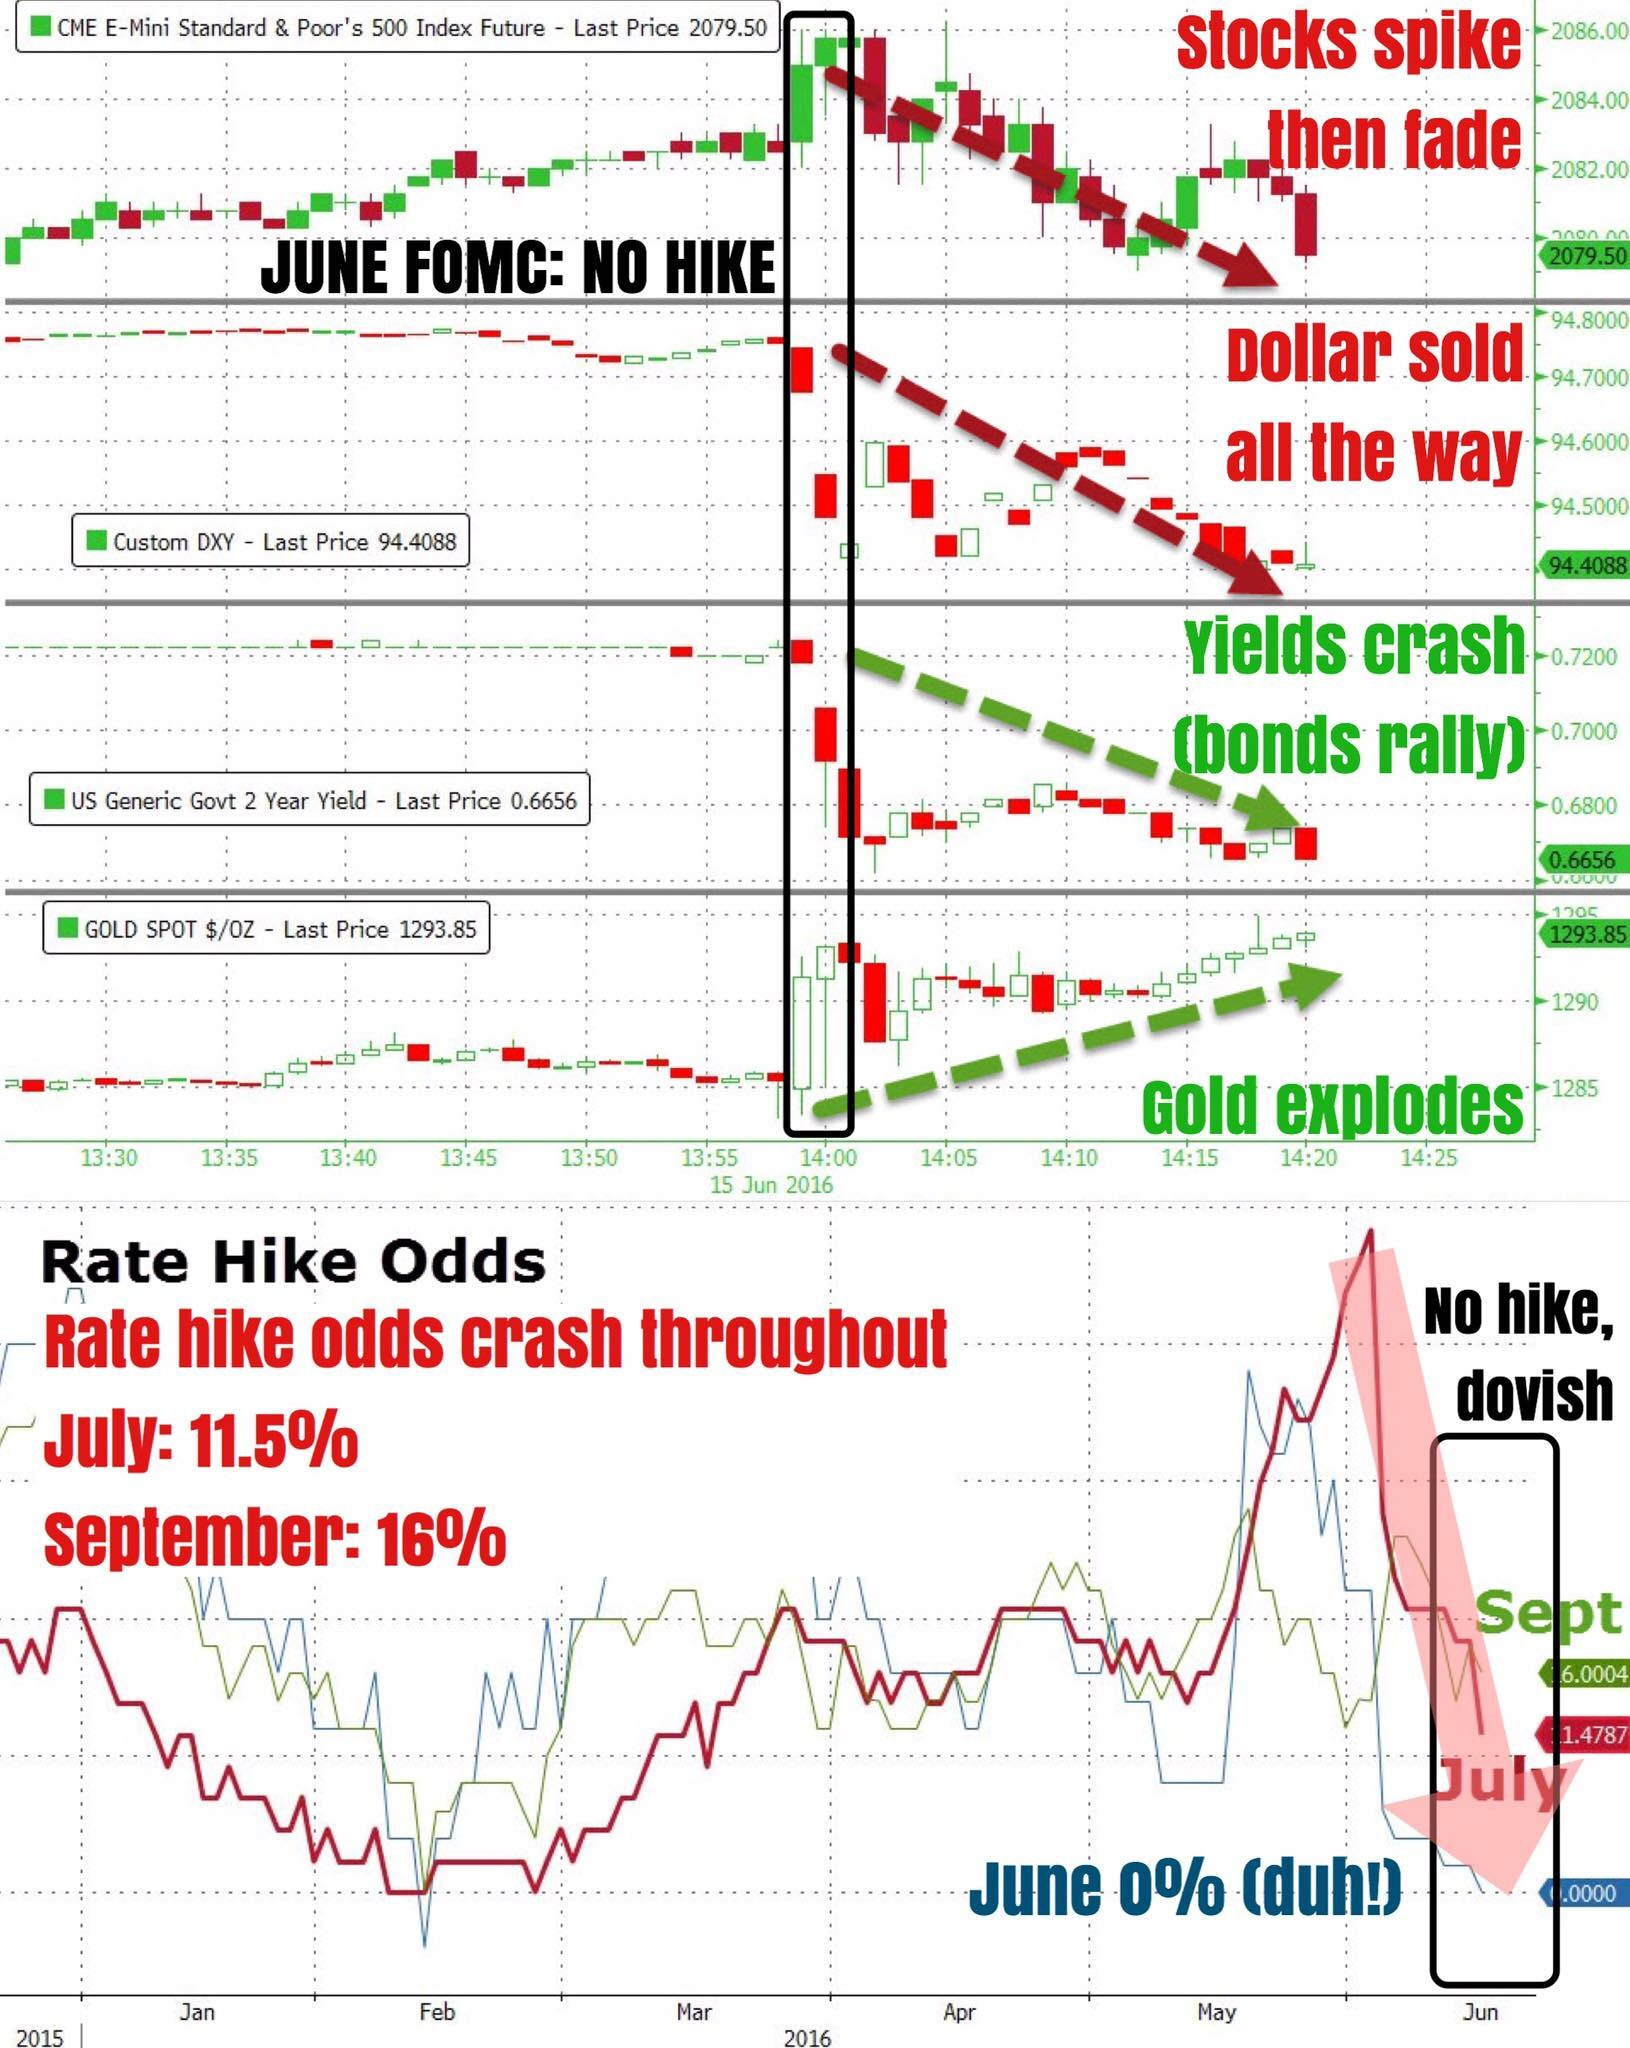 """Updated market reaction after no hike decision in June FOMC. In this case, it's obvious that dollar weakness doesn't equate to strength in risk as stocks are fading after spiking initially. USD containers to be weak while gold and bonds March strongly higher.    FF futures implied rate hike odds for July and September both plunge as the market seems to view the June statement as more dovish than hawkish, with added elements of caution and apprehension by some FOMC members.""    Business Of Finance on Facebook, 16 June 2016"